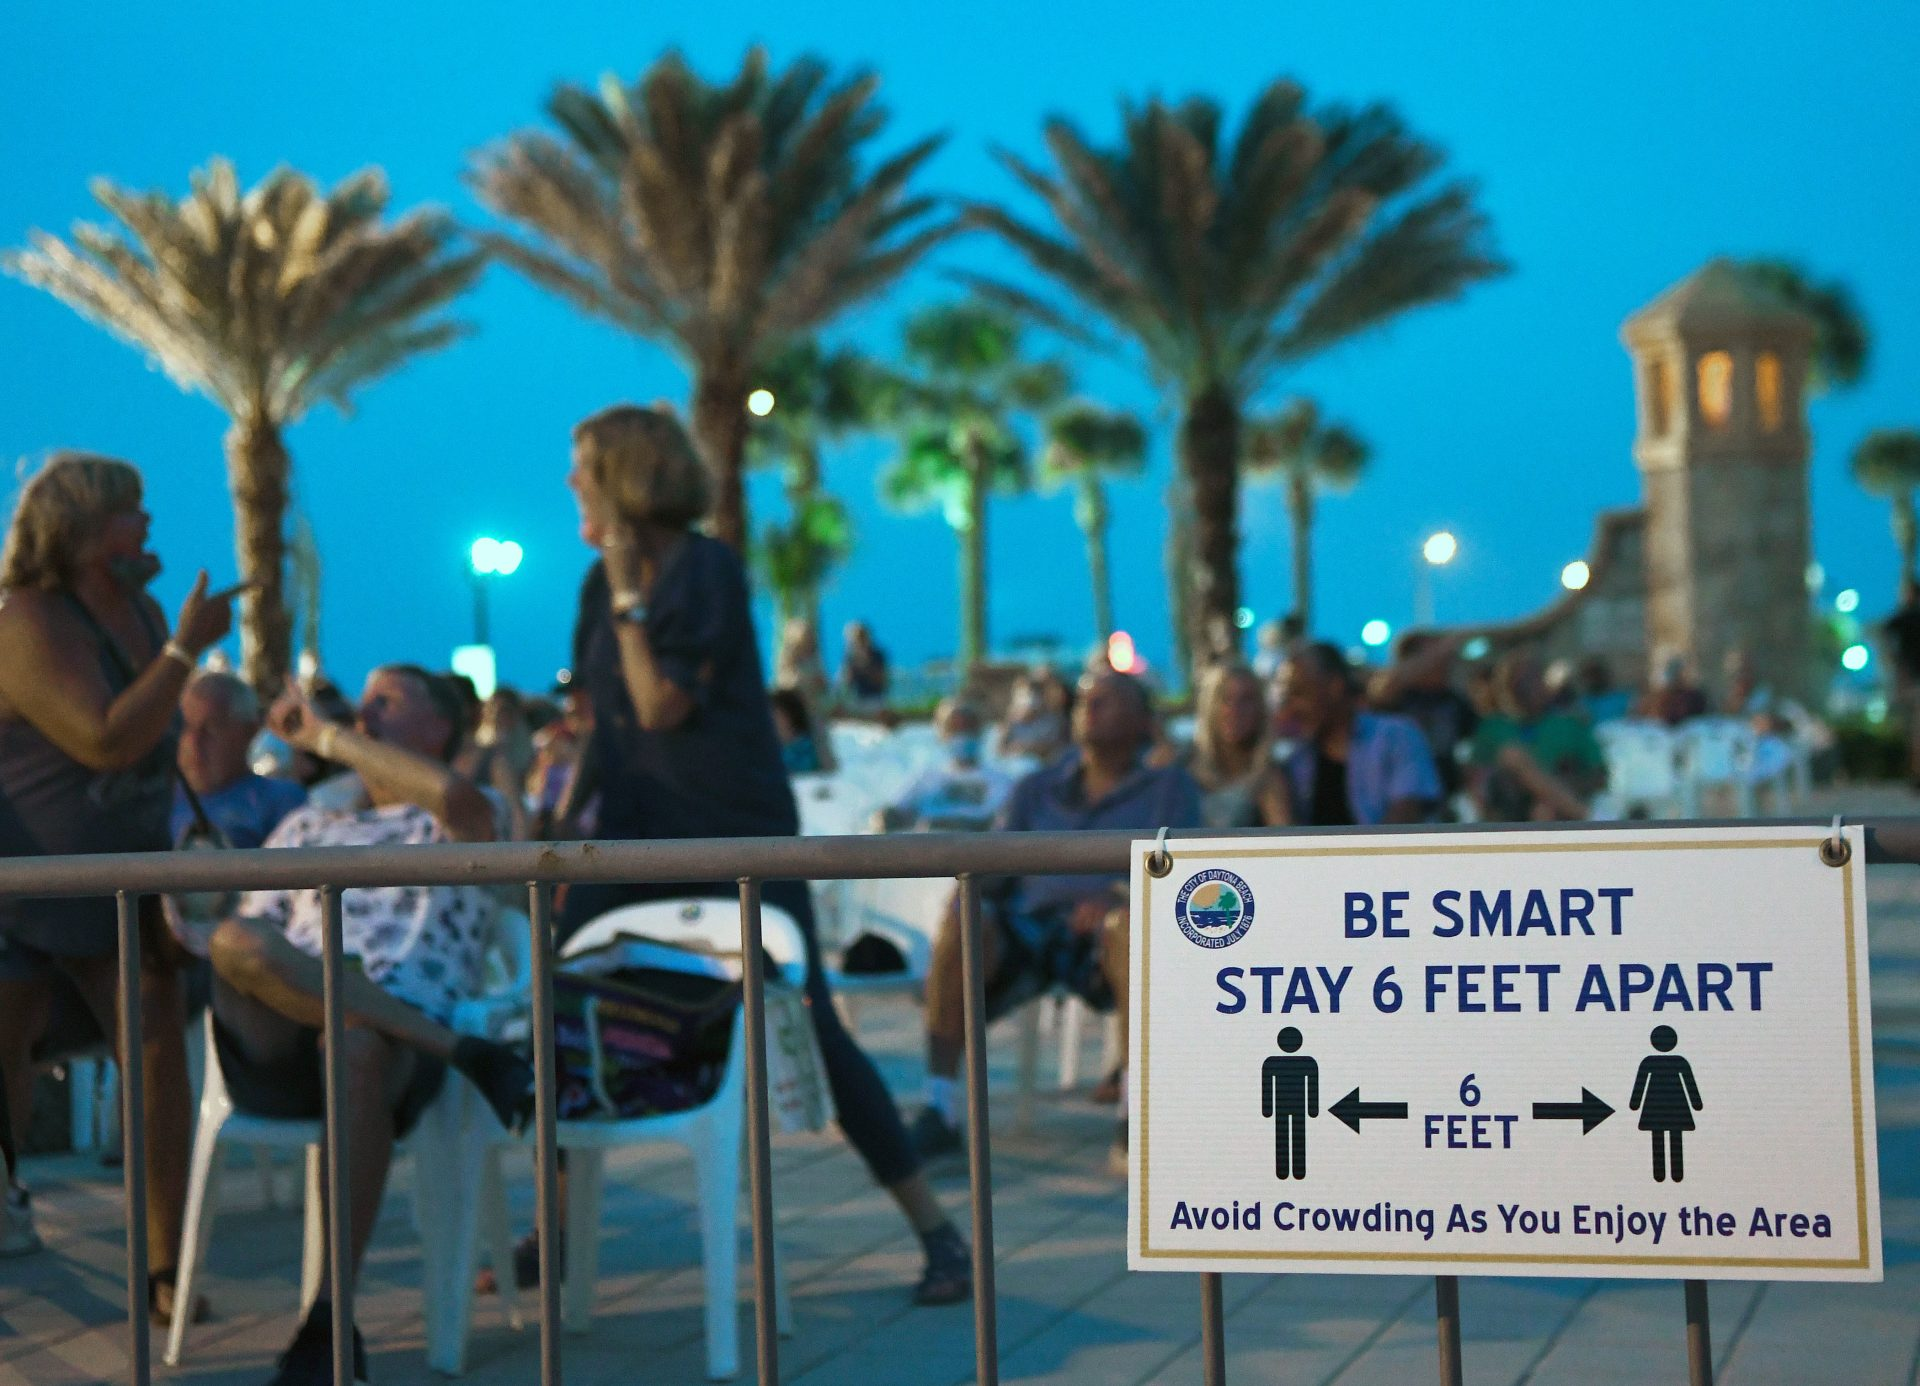 People attend a free concert at the Daytona Beach Bandshell on Labor Day weekend in Daytona Beach, Fla. For months, public health officials around the country have asked people to practice social distancing to slow the spread of the virus.